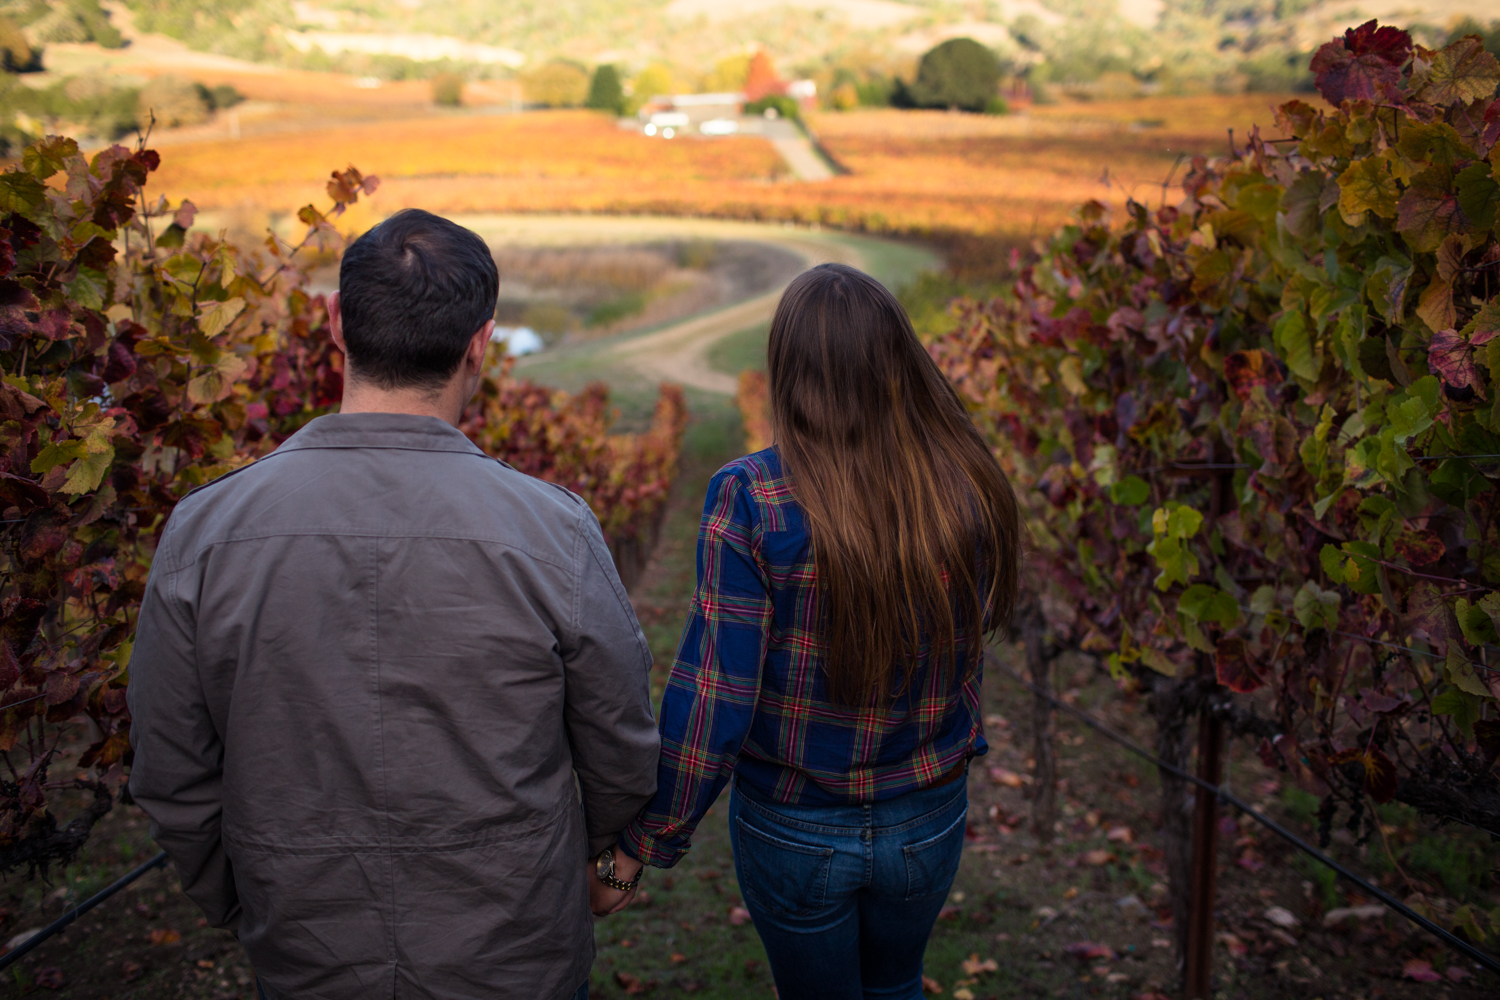 anderson valley mendocino county boonville philo wedding photographer engagement